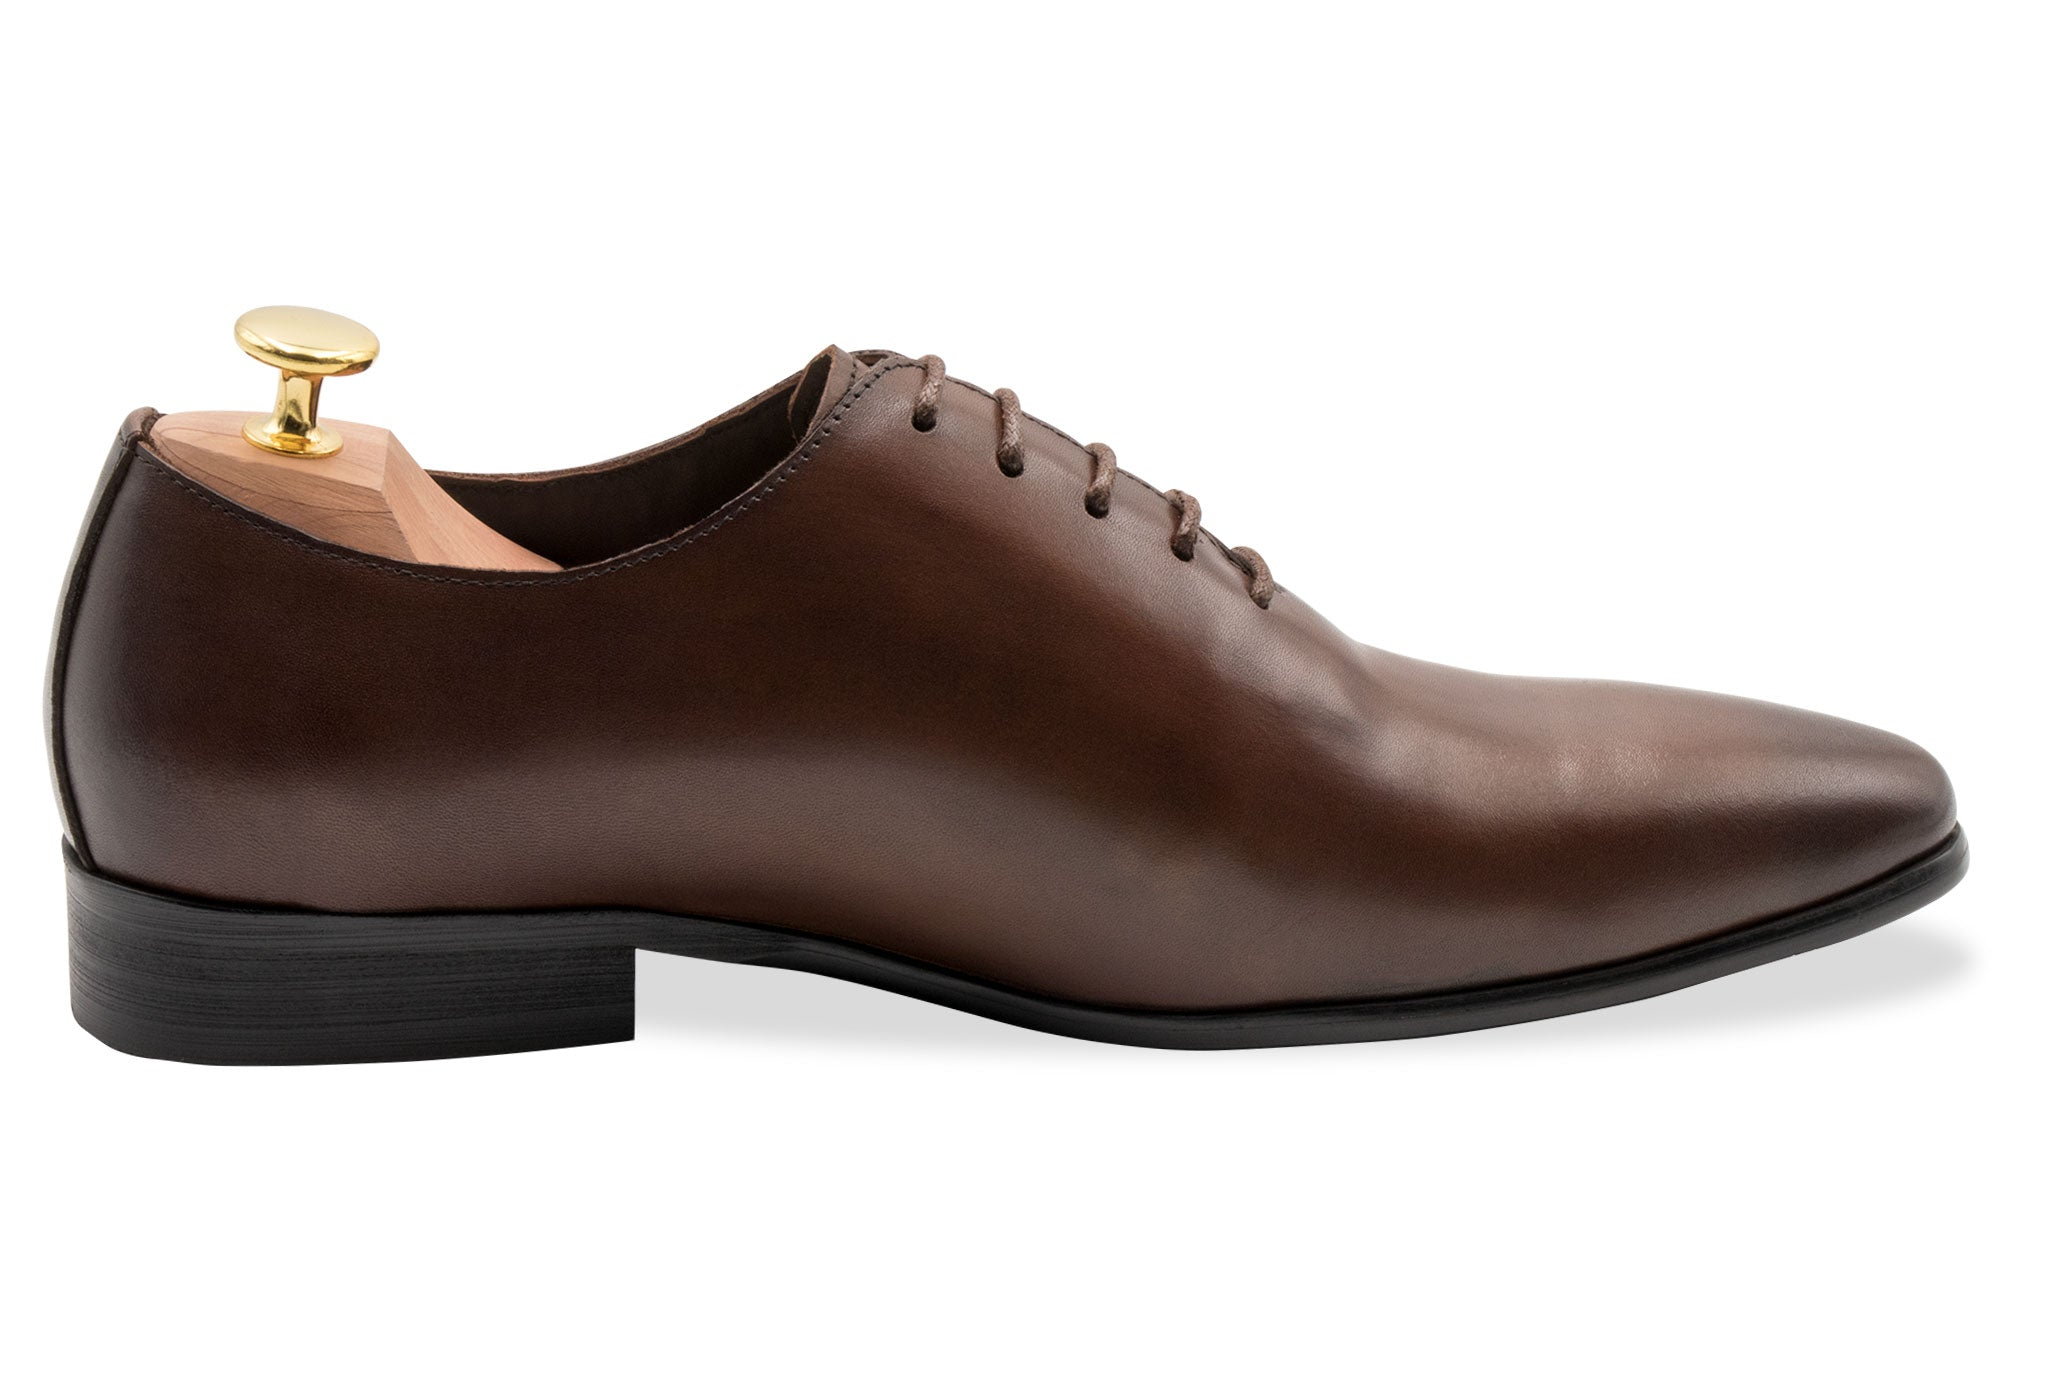 Carlota Wholecut Blake Stitched Walnut Oxford